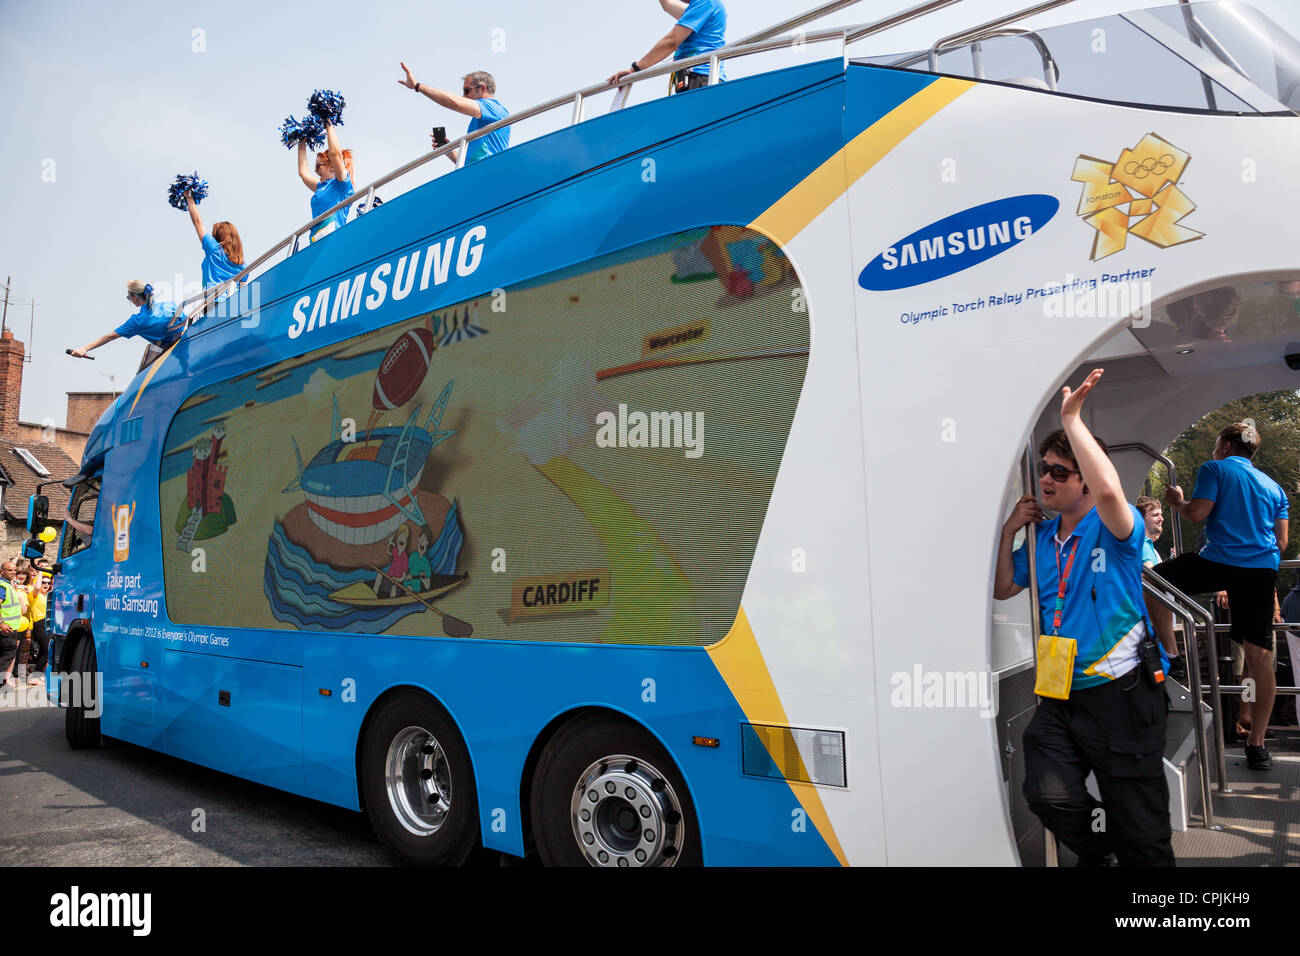 The Samsung sponsorship lorry on the Ludford Bridge, Ludlow, Shropshire as part of the London 2012 Olympic Torch - Stock Image